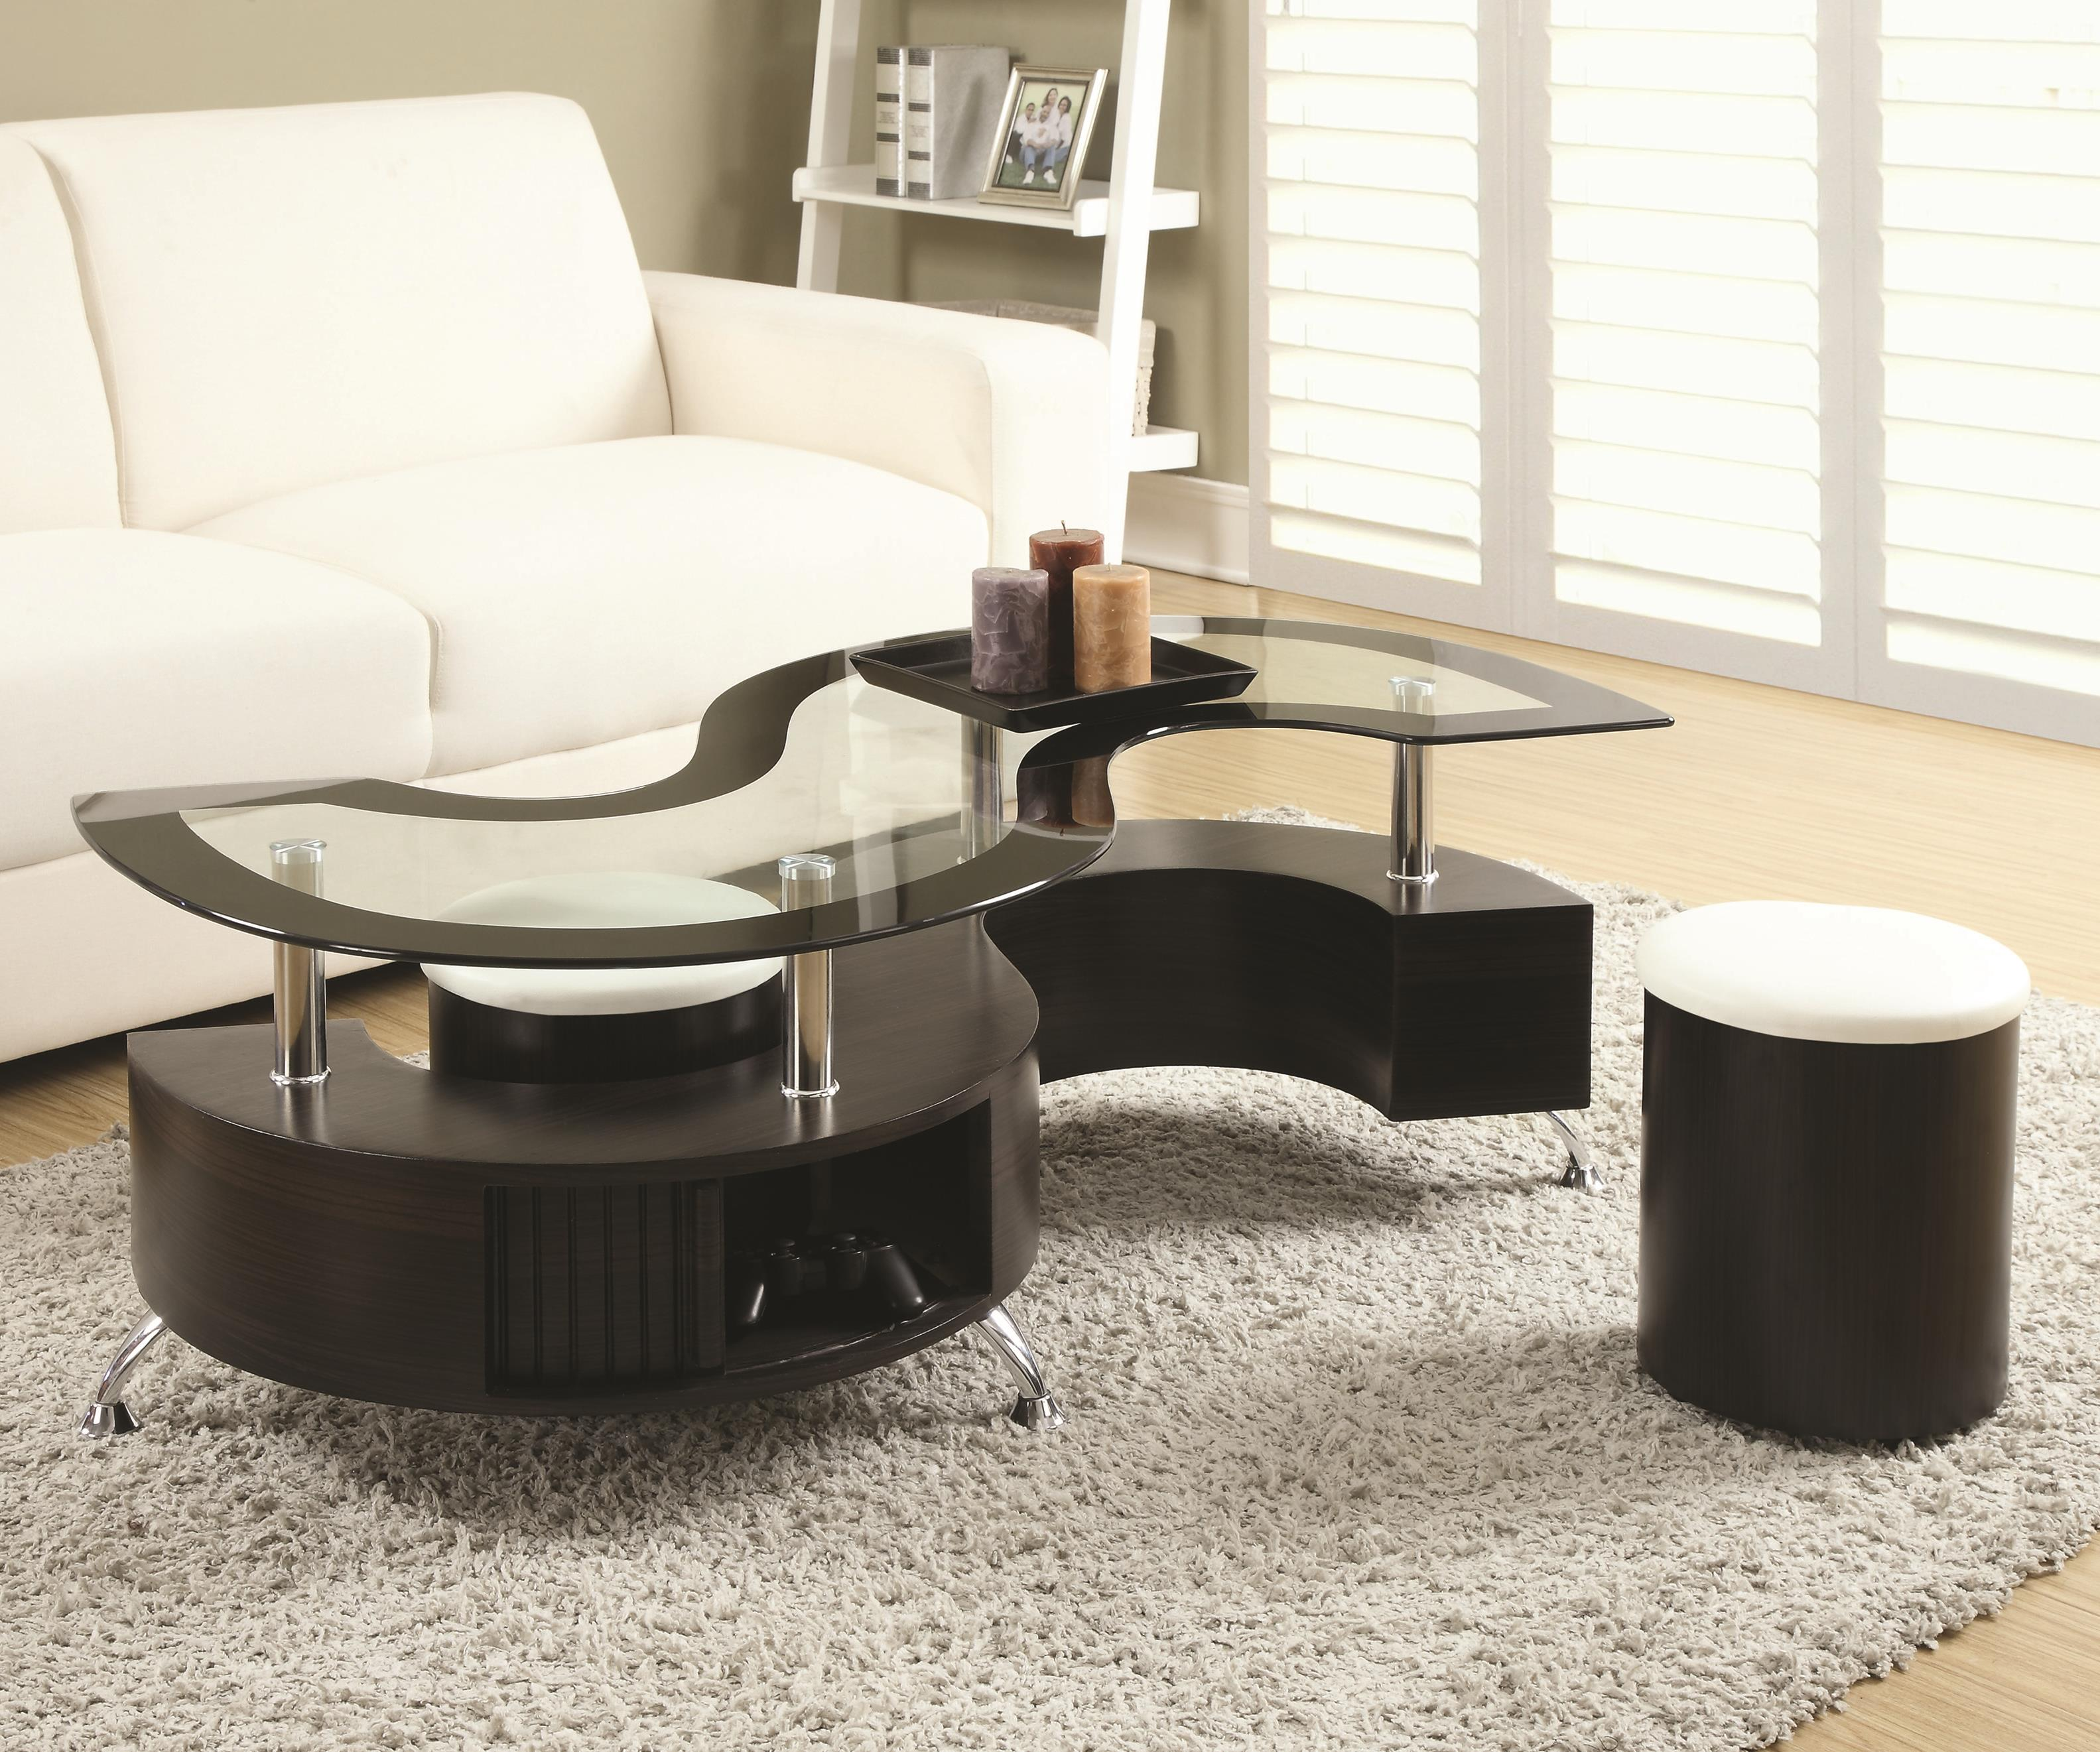 720218 Coffee Table and Stools by Coaster at Prime Brothers Furniture